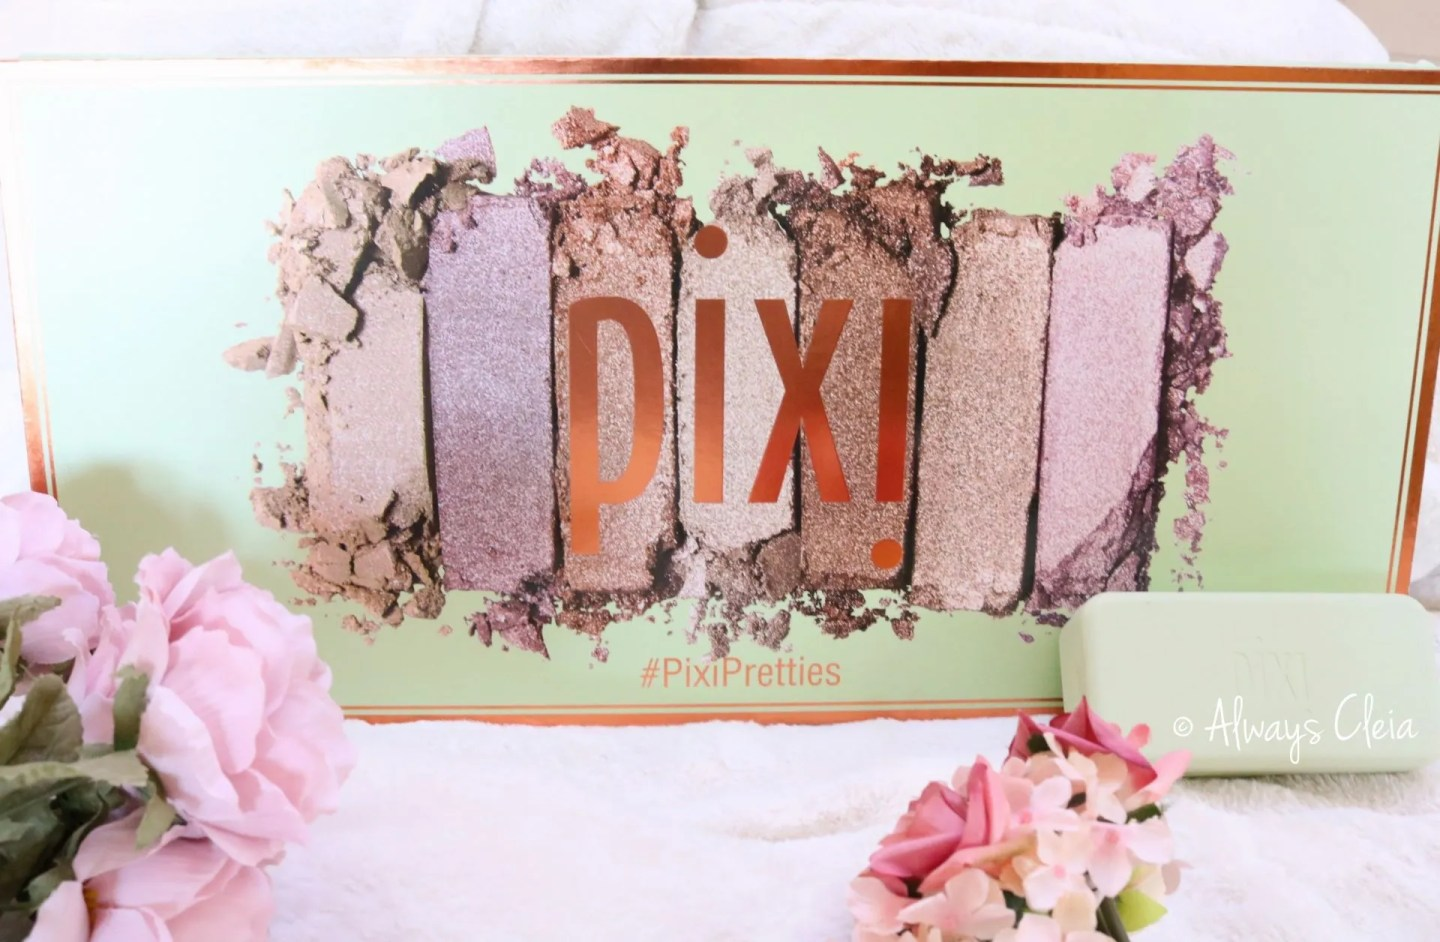 Pixi Pretties PR Haul